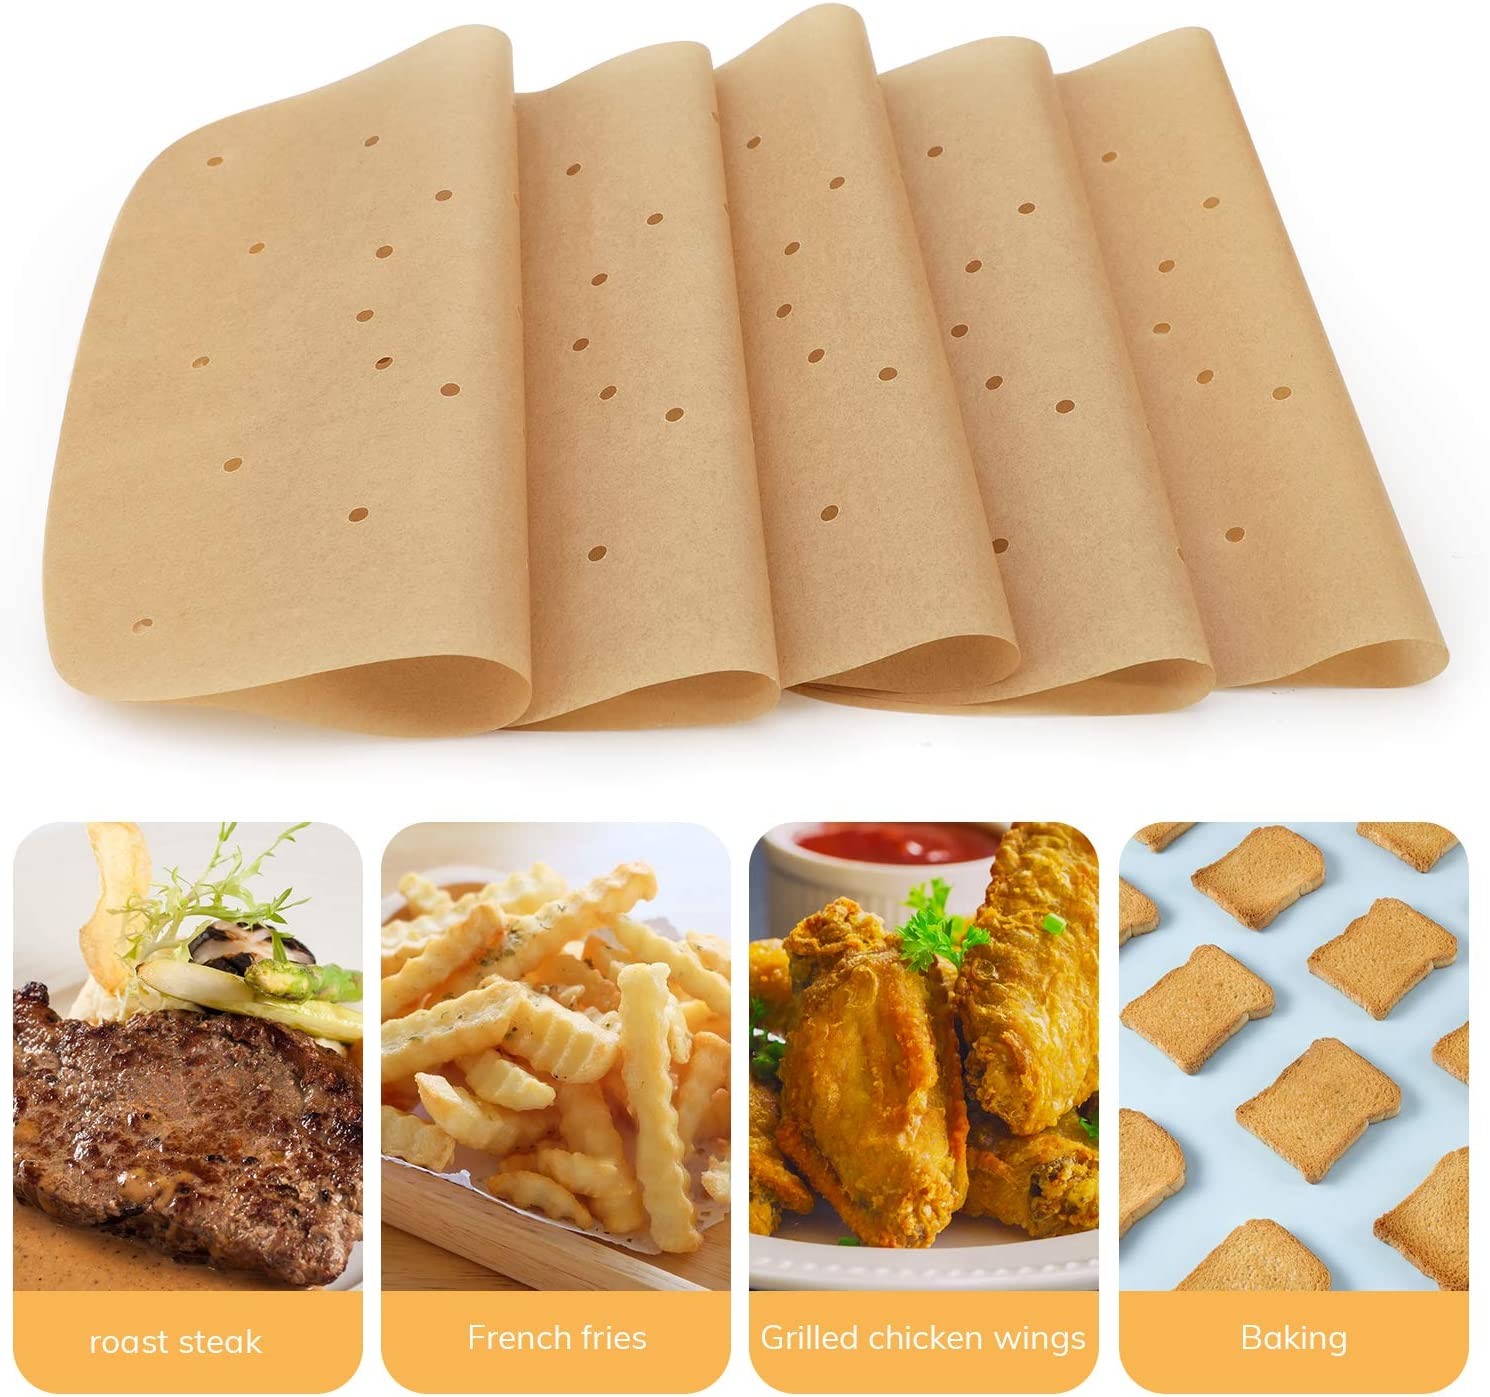 Beasea 300pcs Air Fryer Parchment Paper Unbleached Air Fryer Liners Square Perforated Parchment Paper Bamboo Steamer Papers for Air Fryer and Steaming Basket Air Fryer Filter Paper 8.5 Inch